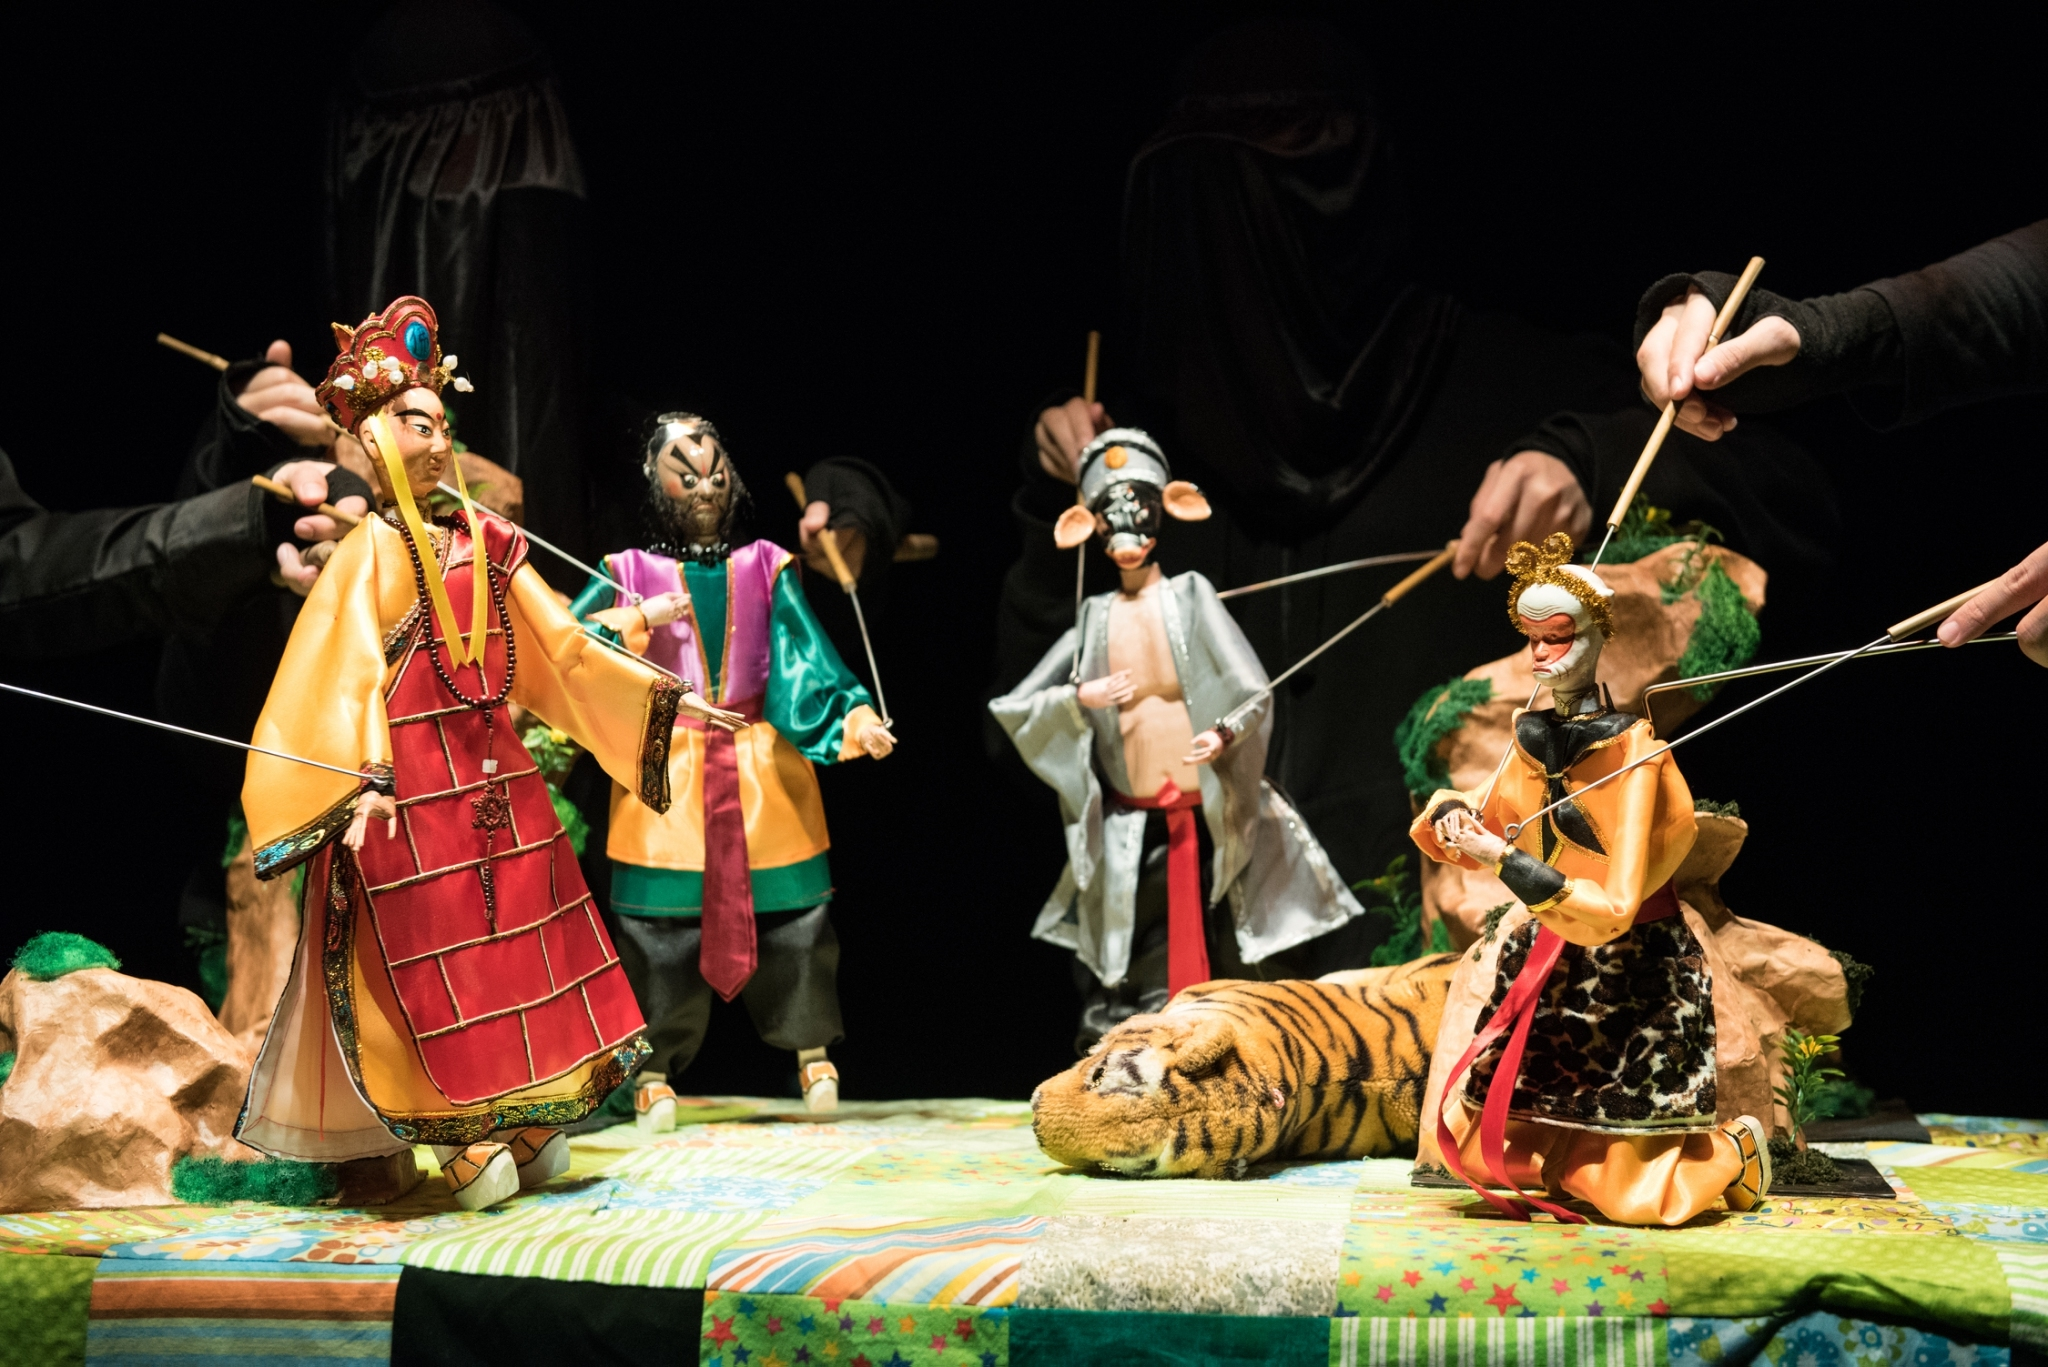 Celebrate the puppetry arts with the Siam Paragon World Fascinating Puppets show